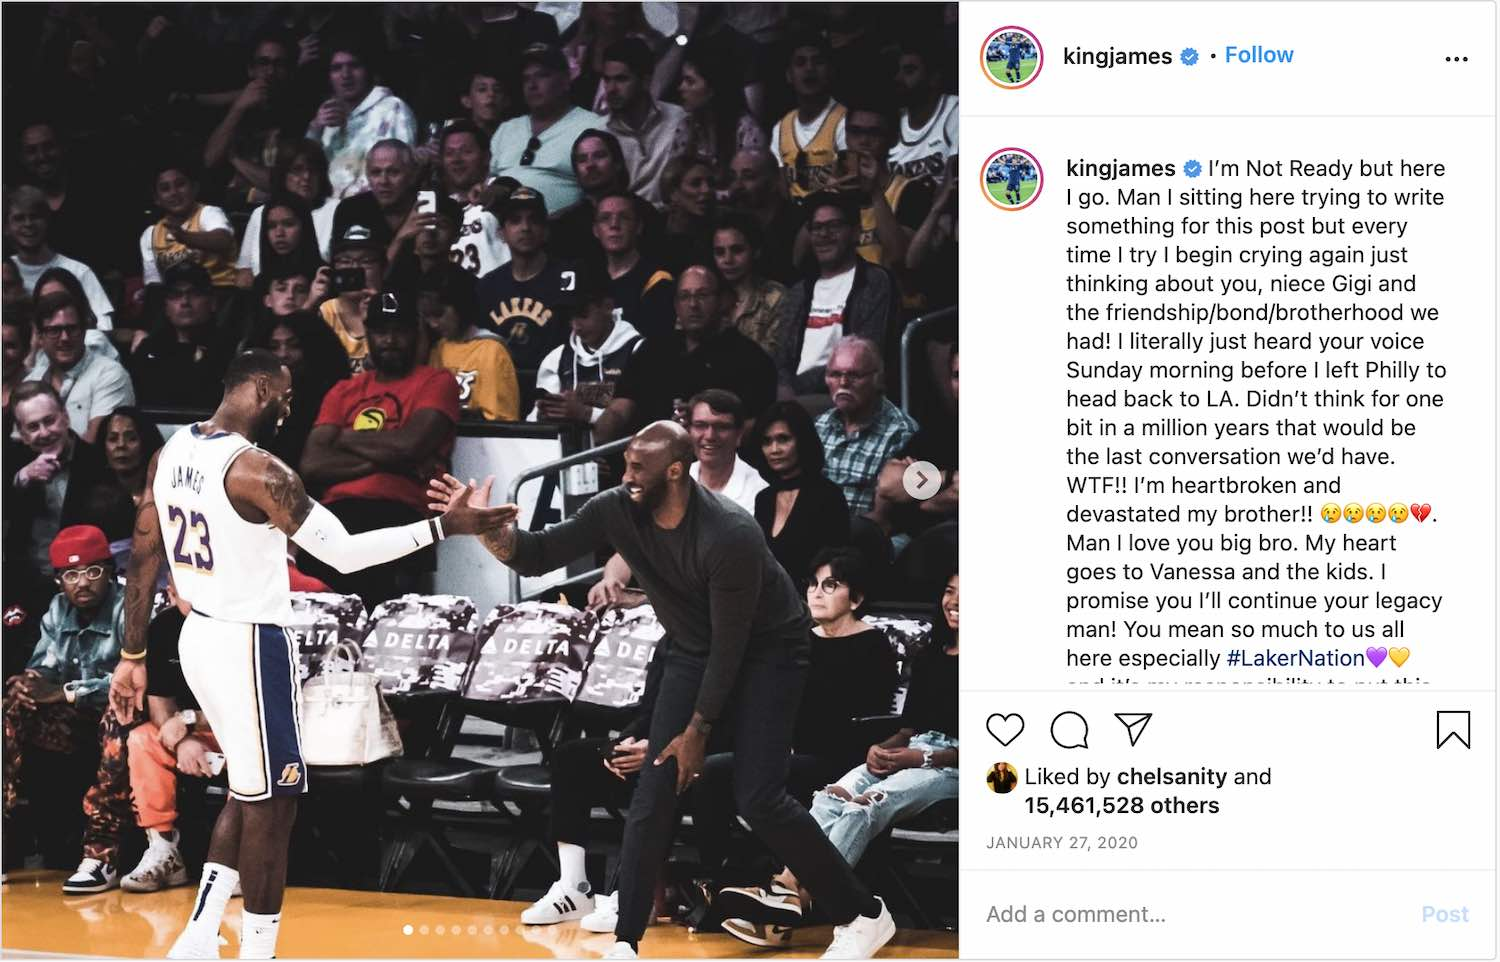 LeBron James shared his photo with Kobe Bryant on Instagram after Kobe's death.